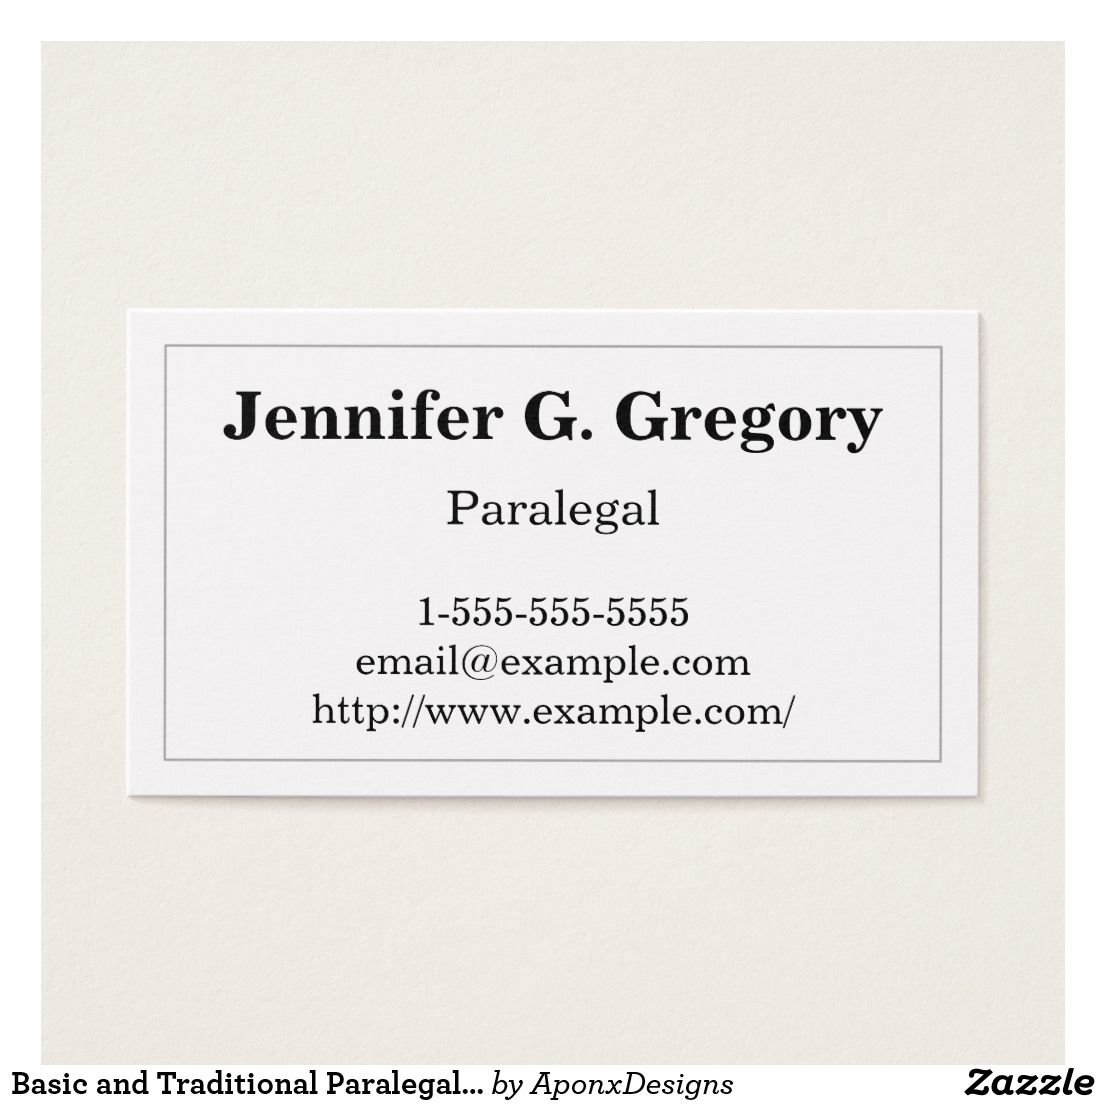 Basic And Traditional Paralegal Business Card Zazzle Com Business Card Design Simple Simple Business Cards Customizable Business Cards